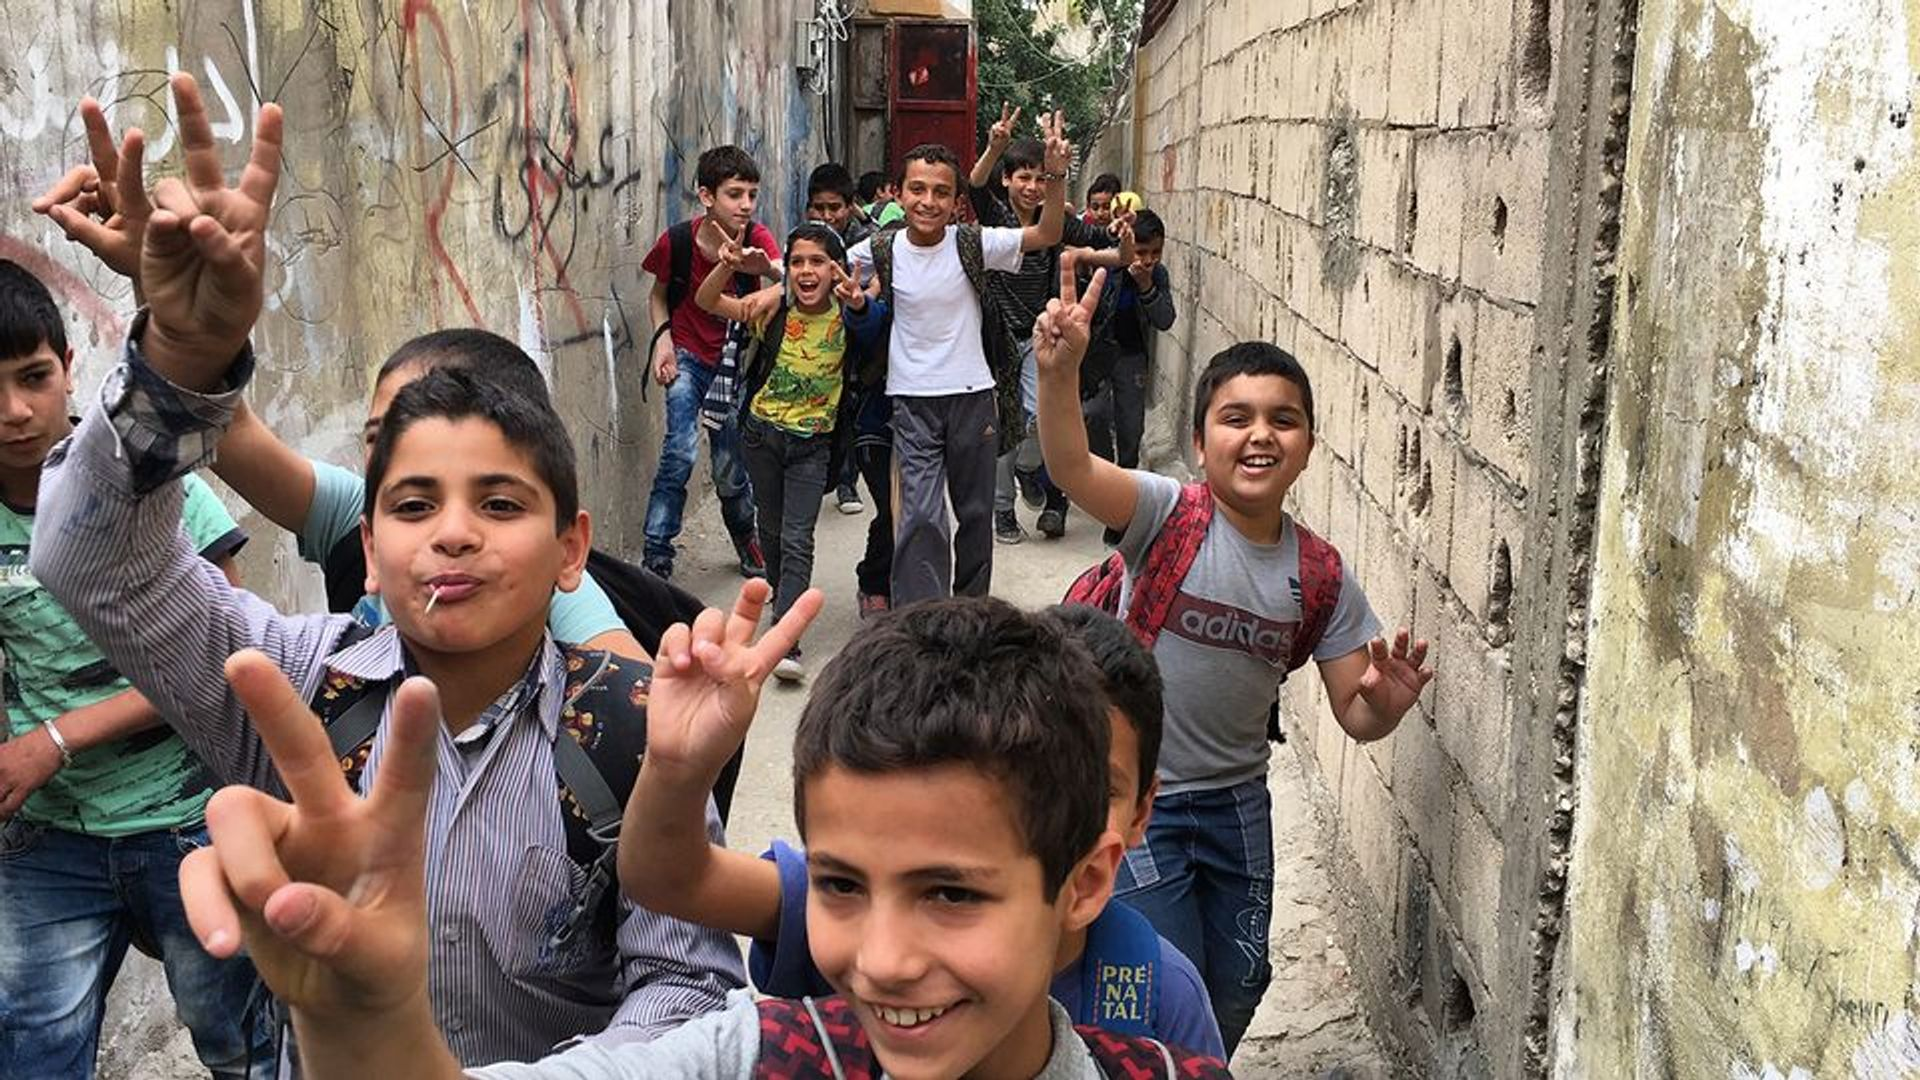 A group of children run through Ain al-Hilweh, the largest Palestinian refugee camp in Lebanon, from Human Flow by Ai Weiwei © Photo courtesy of Amazon Studios